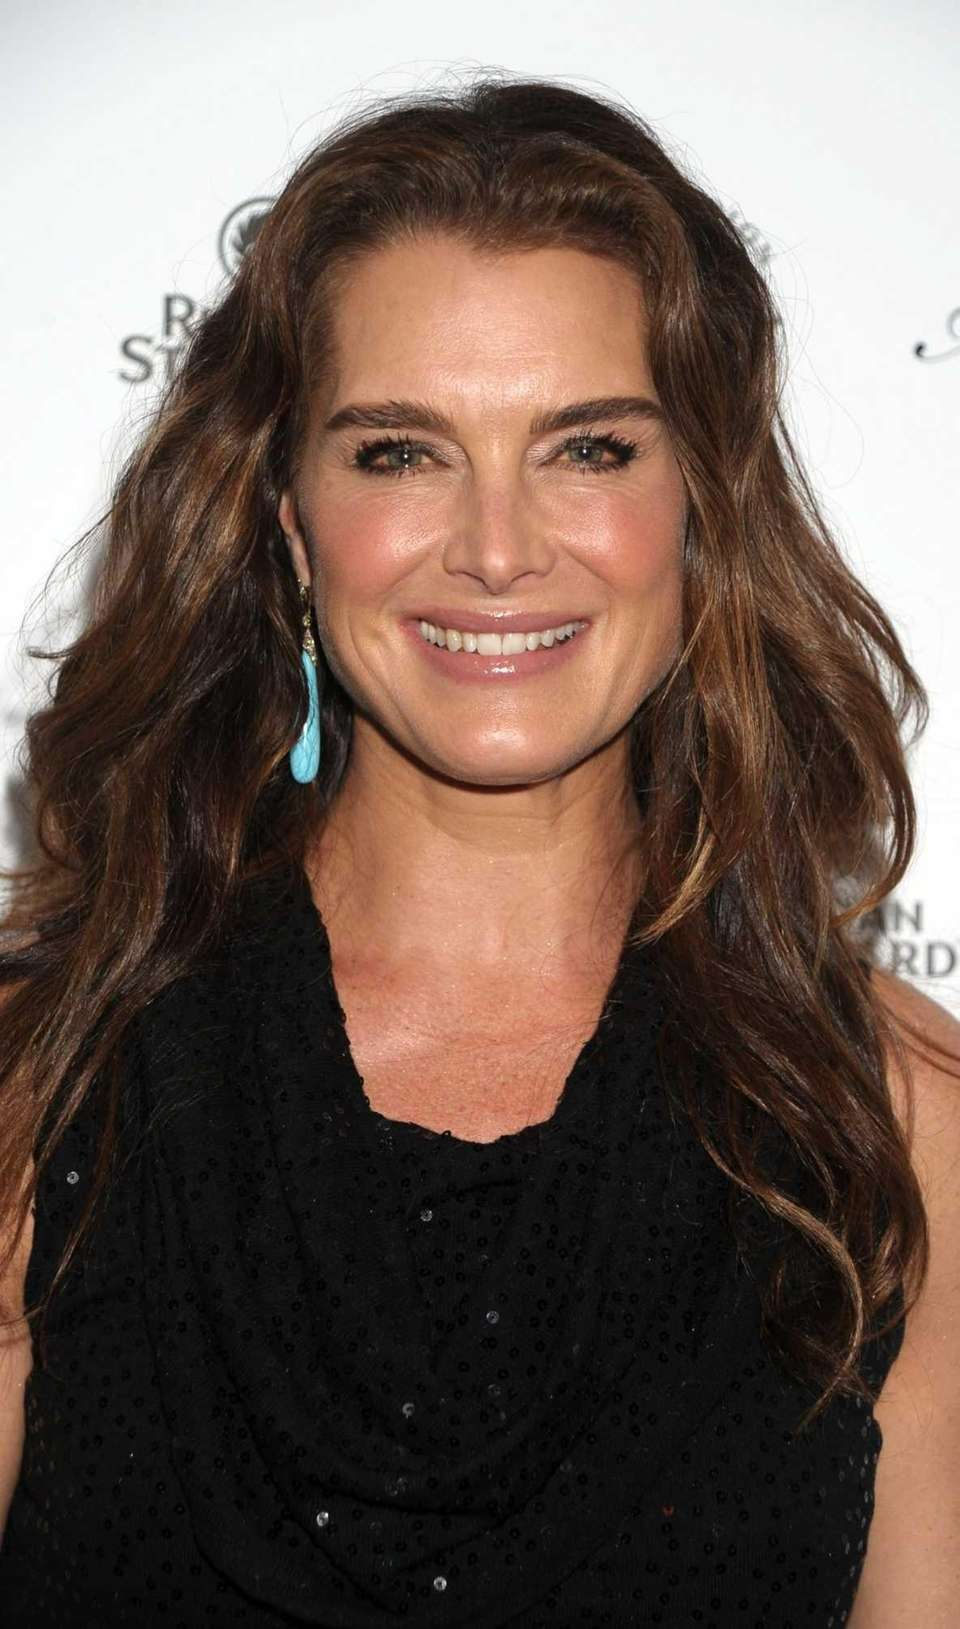 Brooke Shields attends the Hampton Magazine's annual Memorial